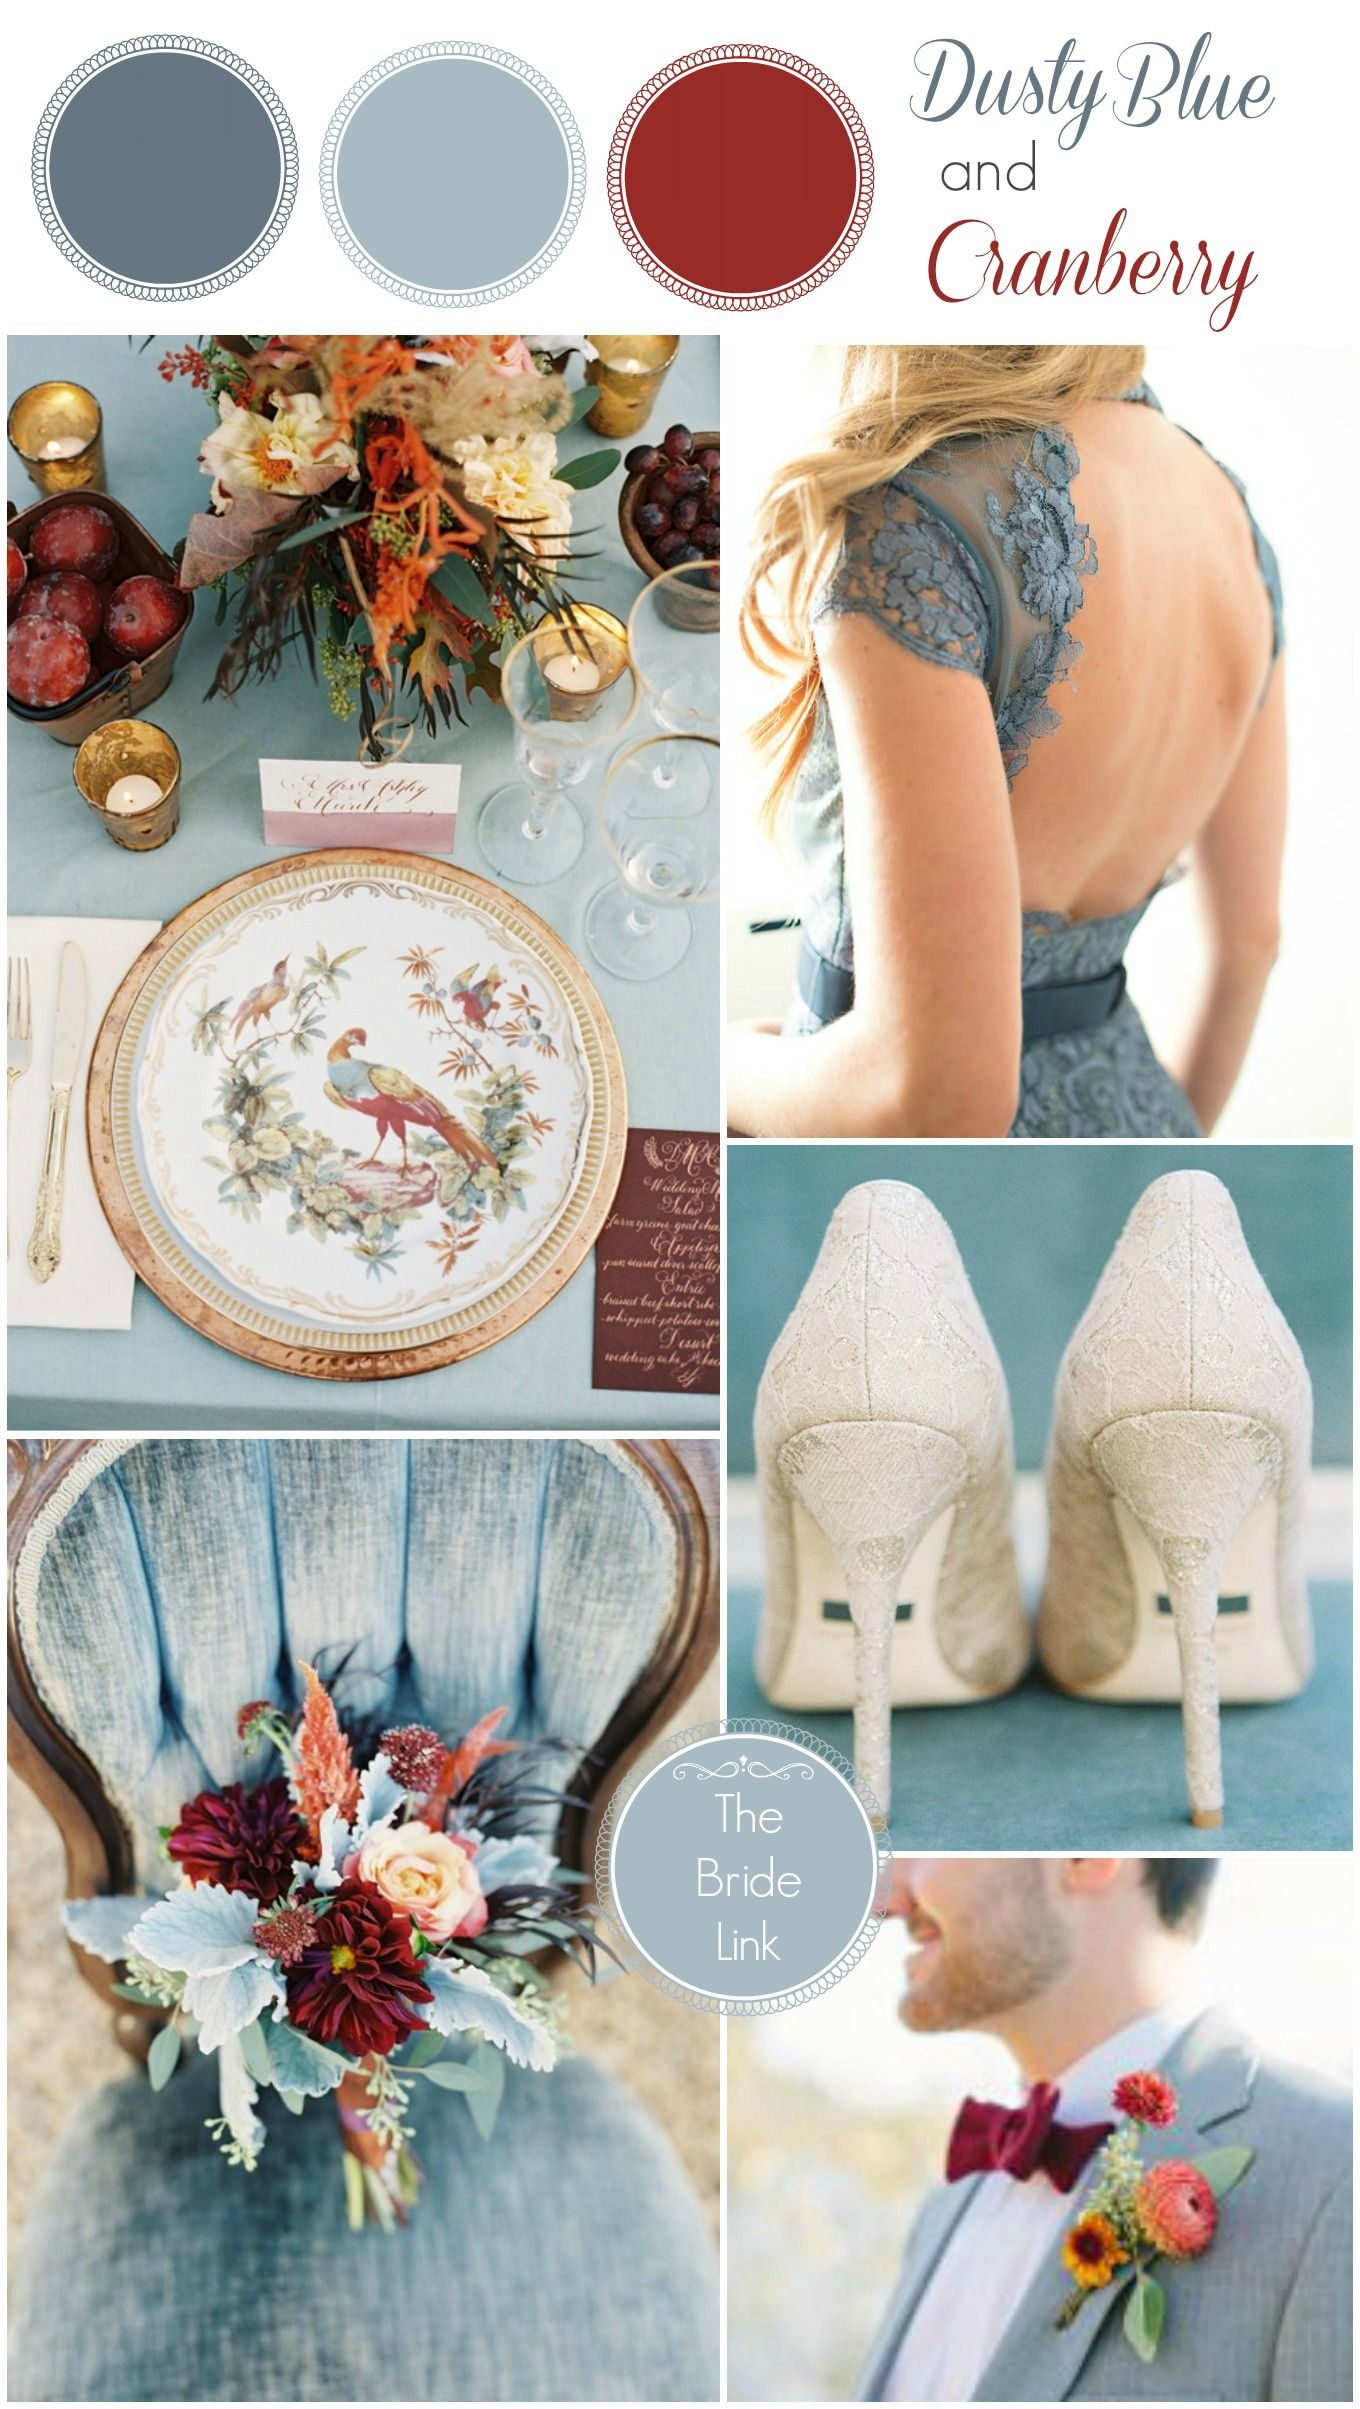 Top wedding color combinations mix buqu e gostar top wedding color combinations from top wedding bloggers see these awesome color combinations for ideas for your upcoming events junglespirit Gallery